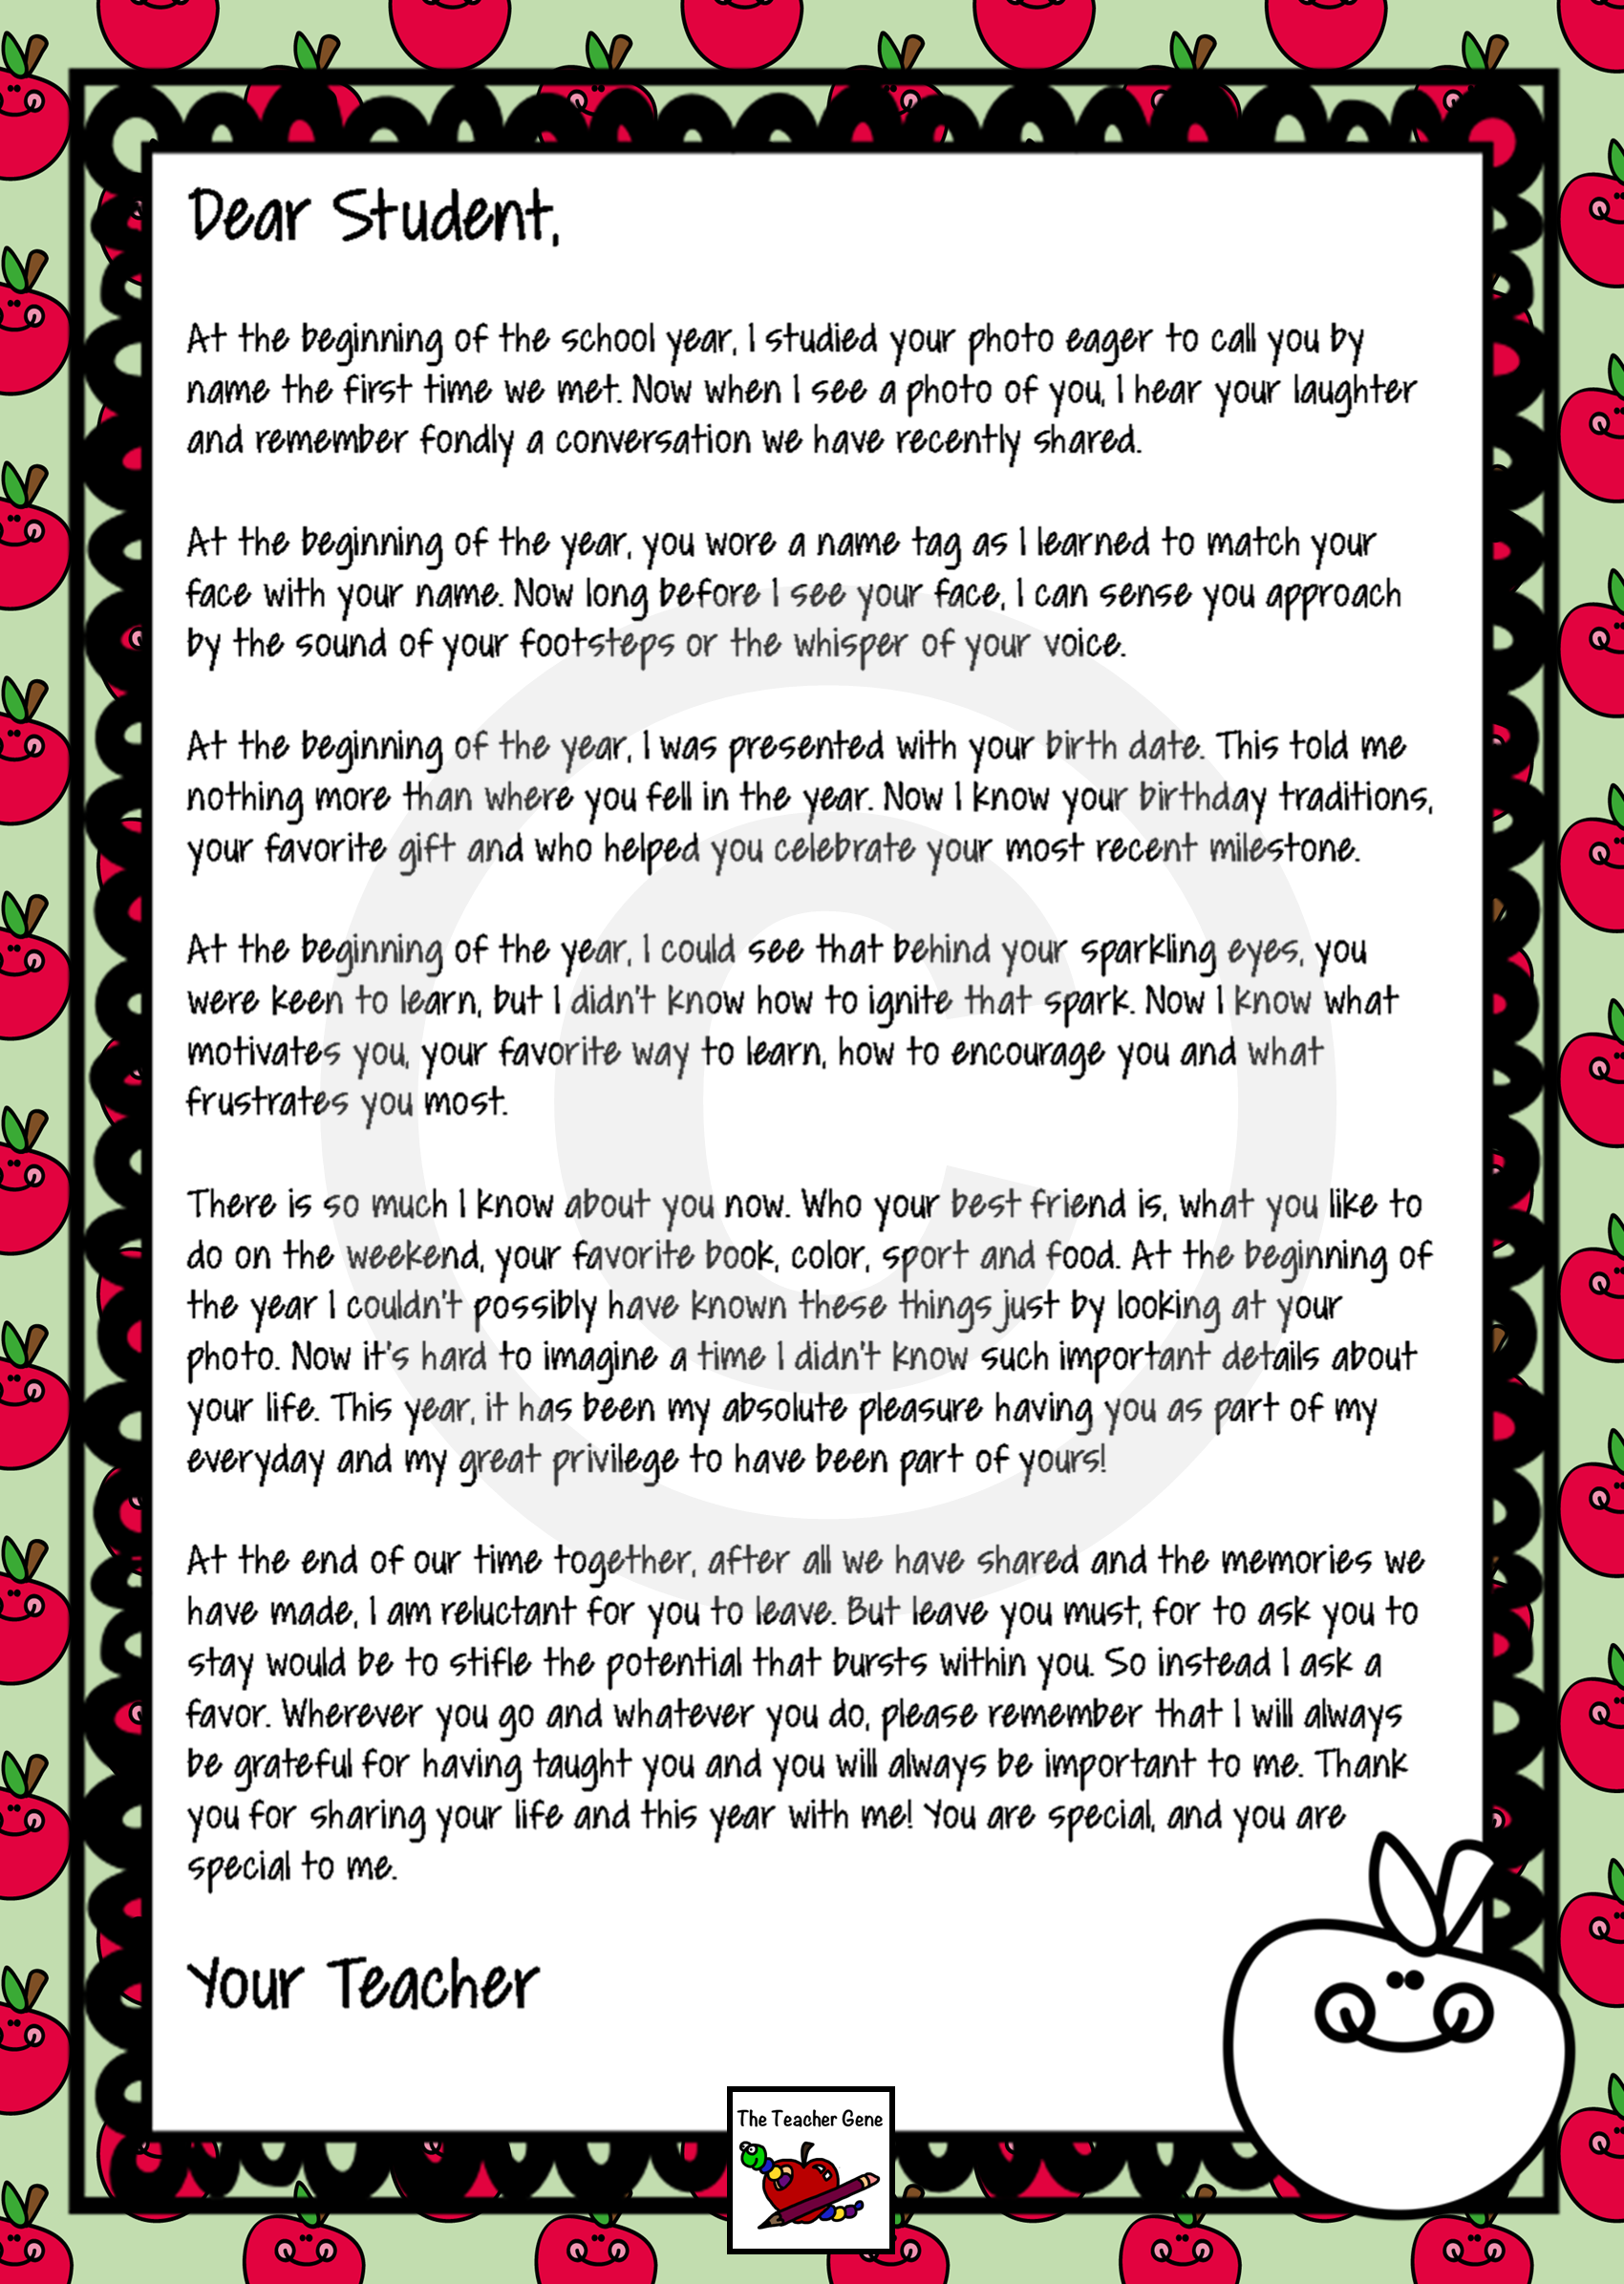 End of Year Letter From Your Teacher Editable | Classroom Forms